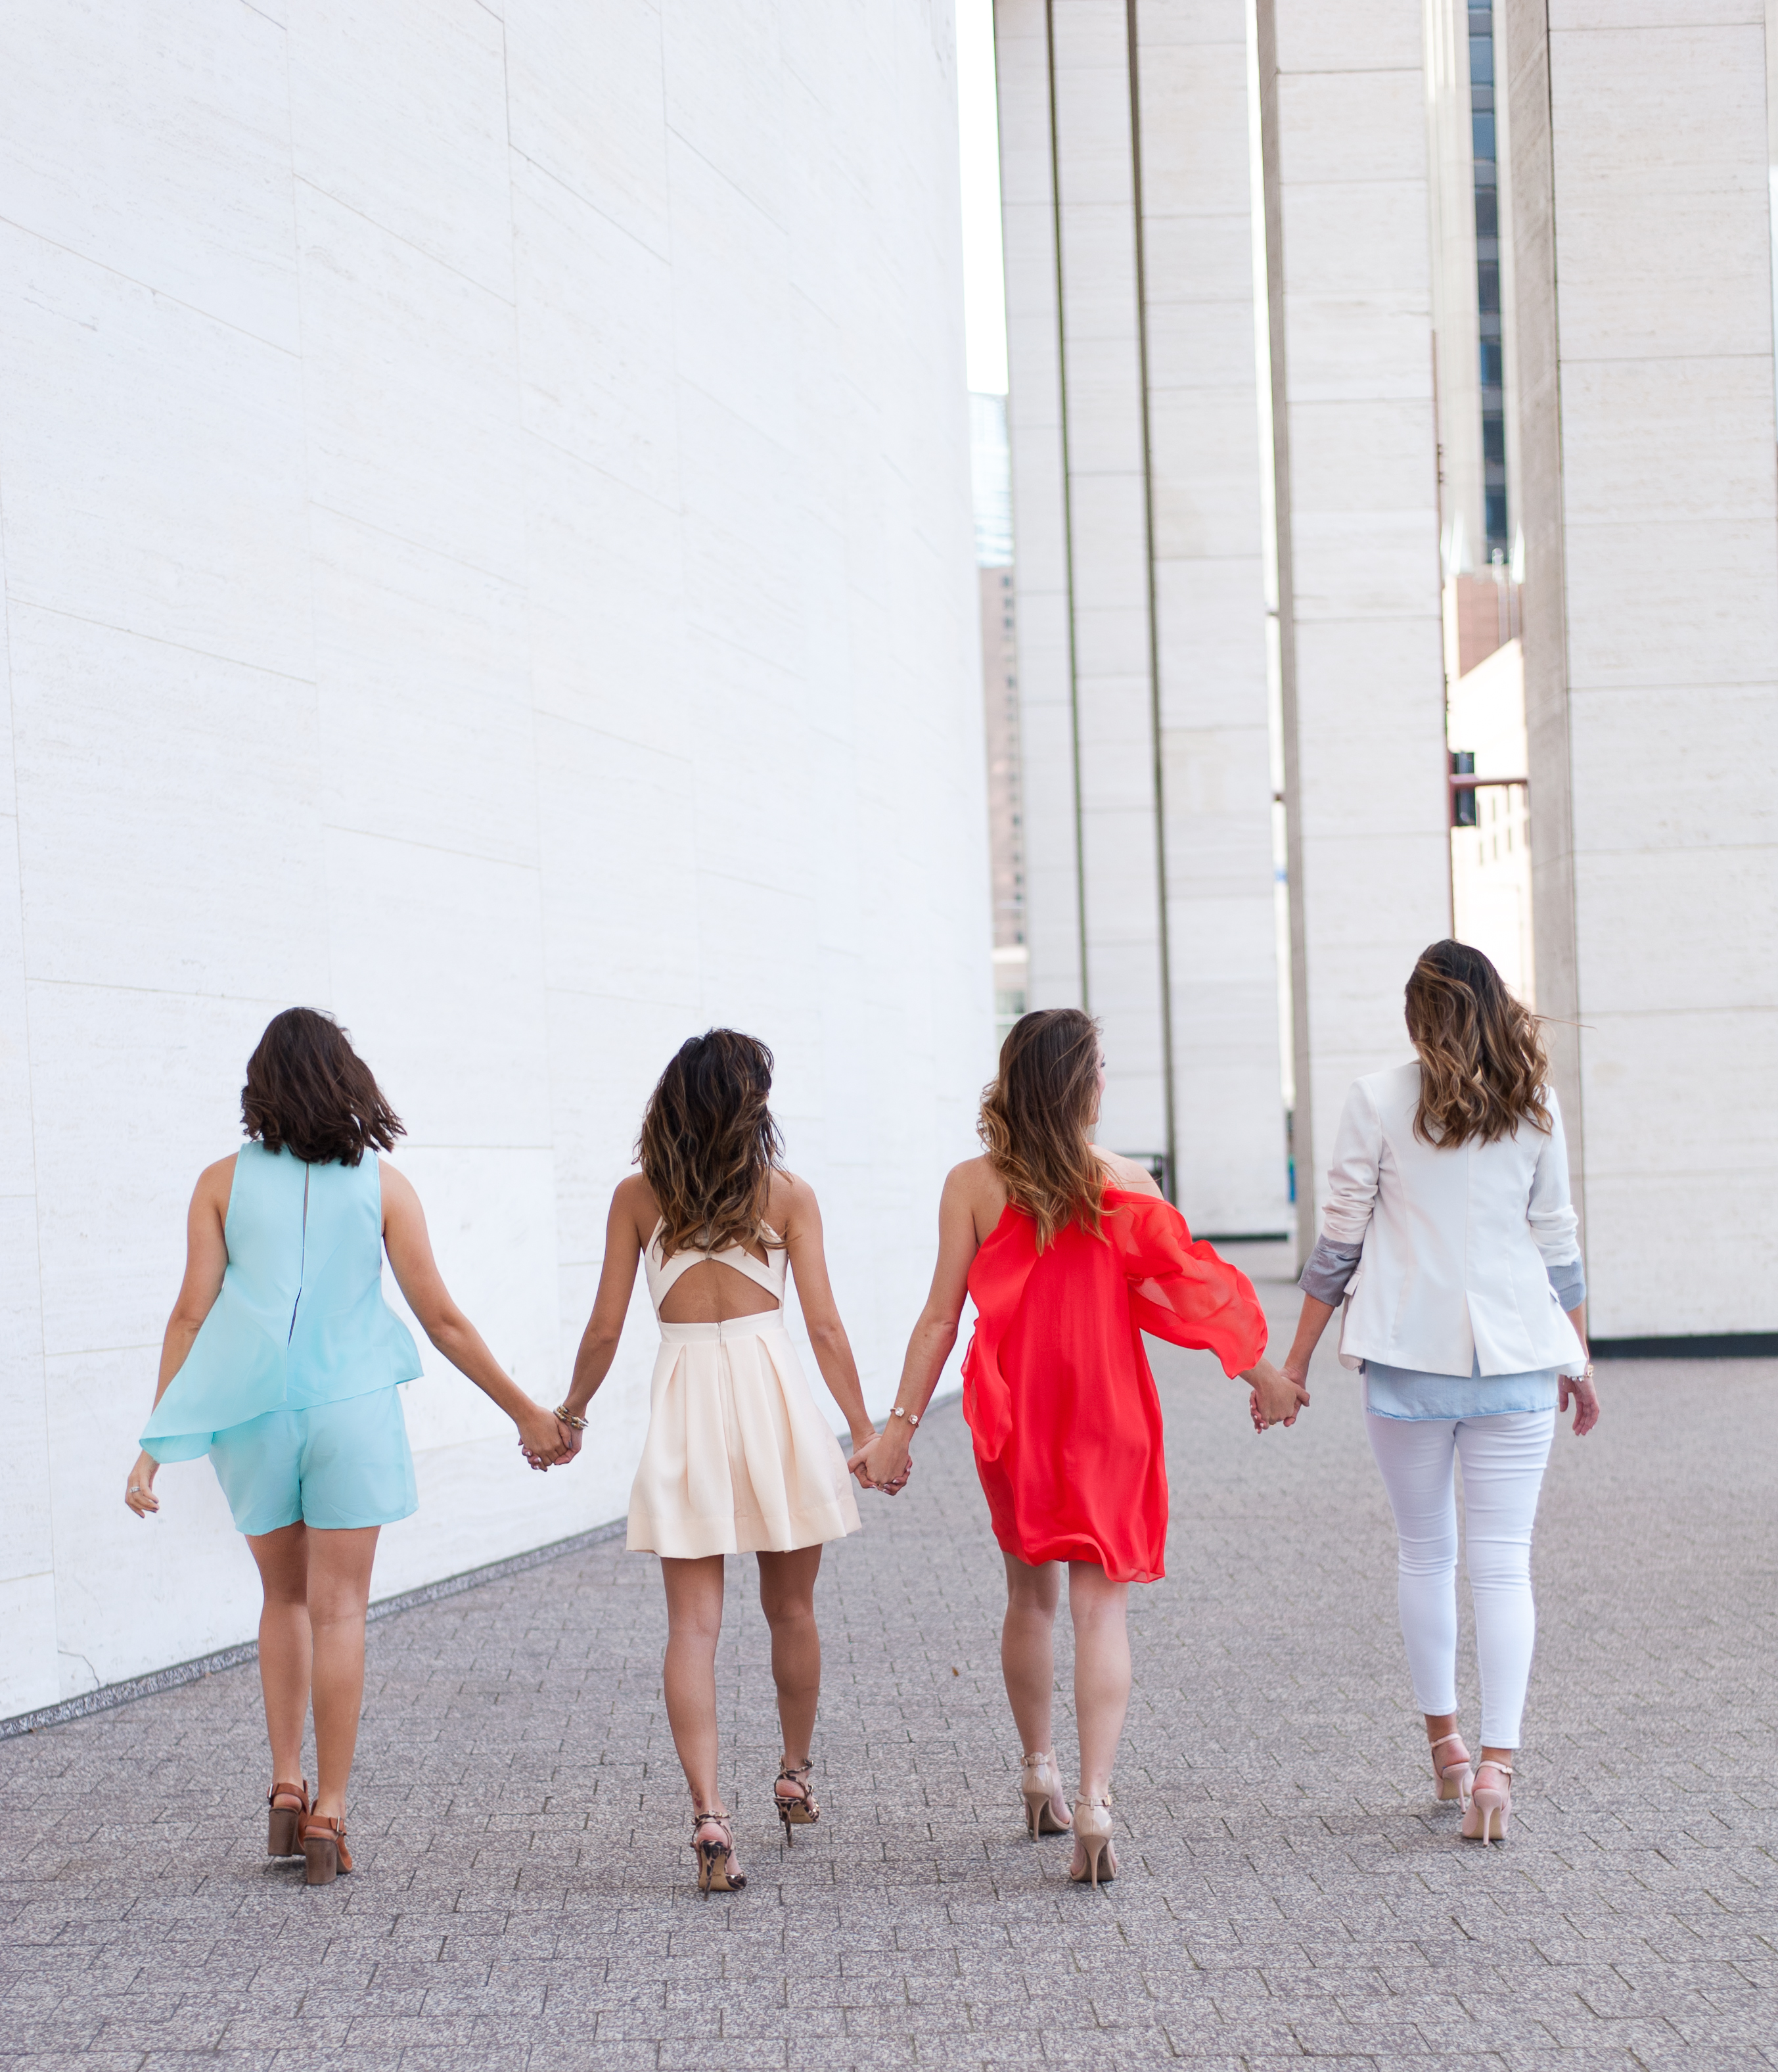 Dress Up Buttercup   Houston Fashion Blog - Dede Raad Pantone with Thrive